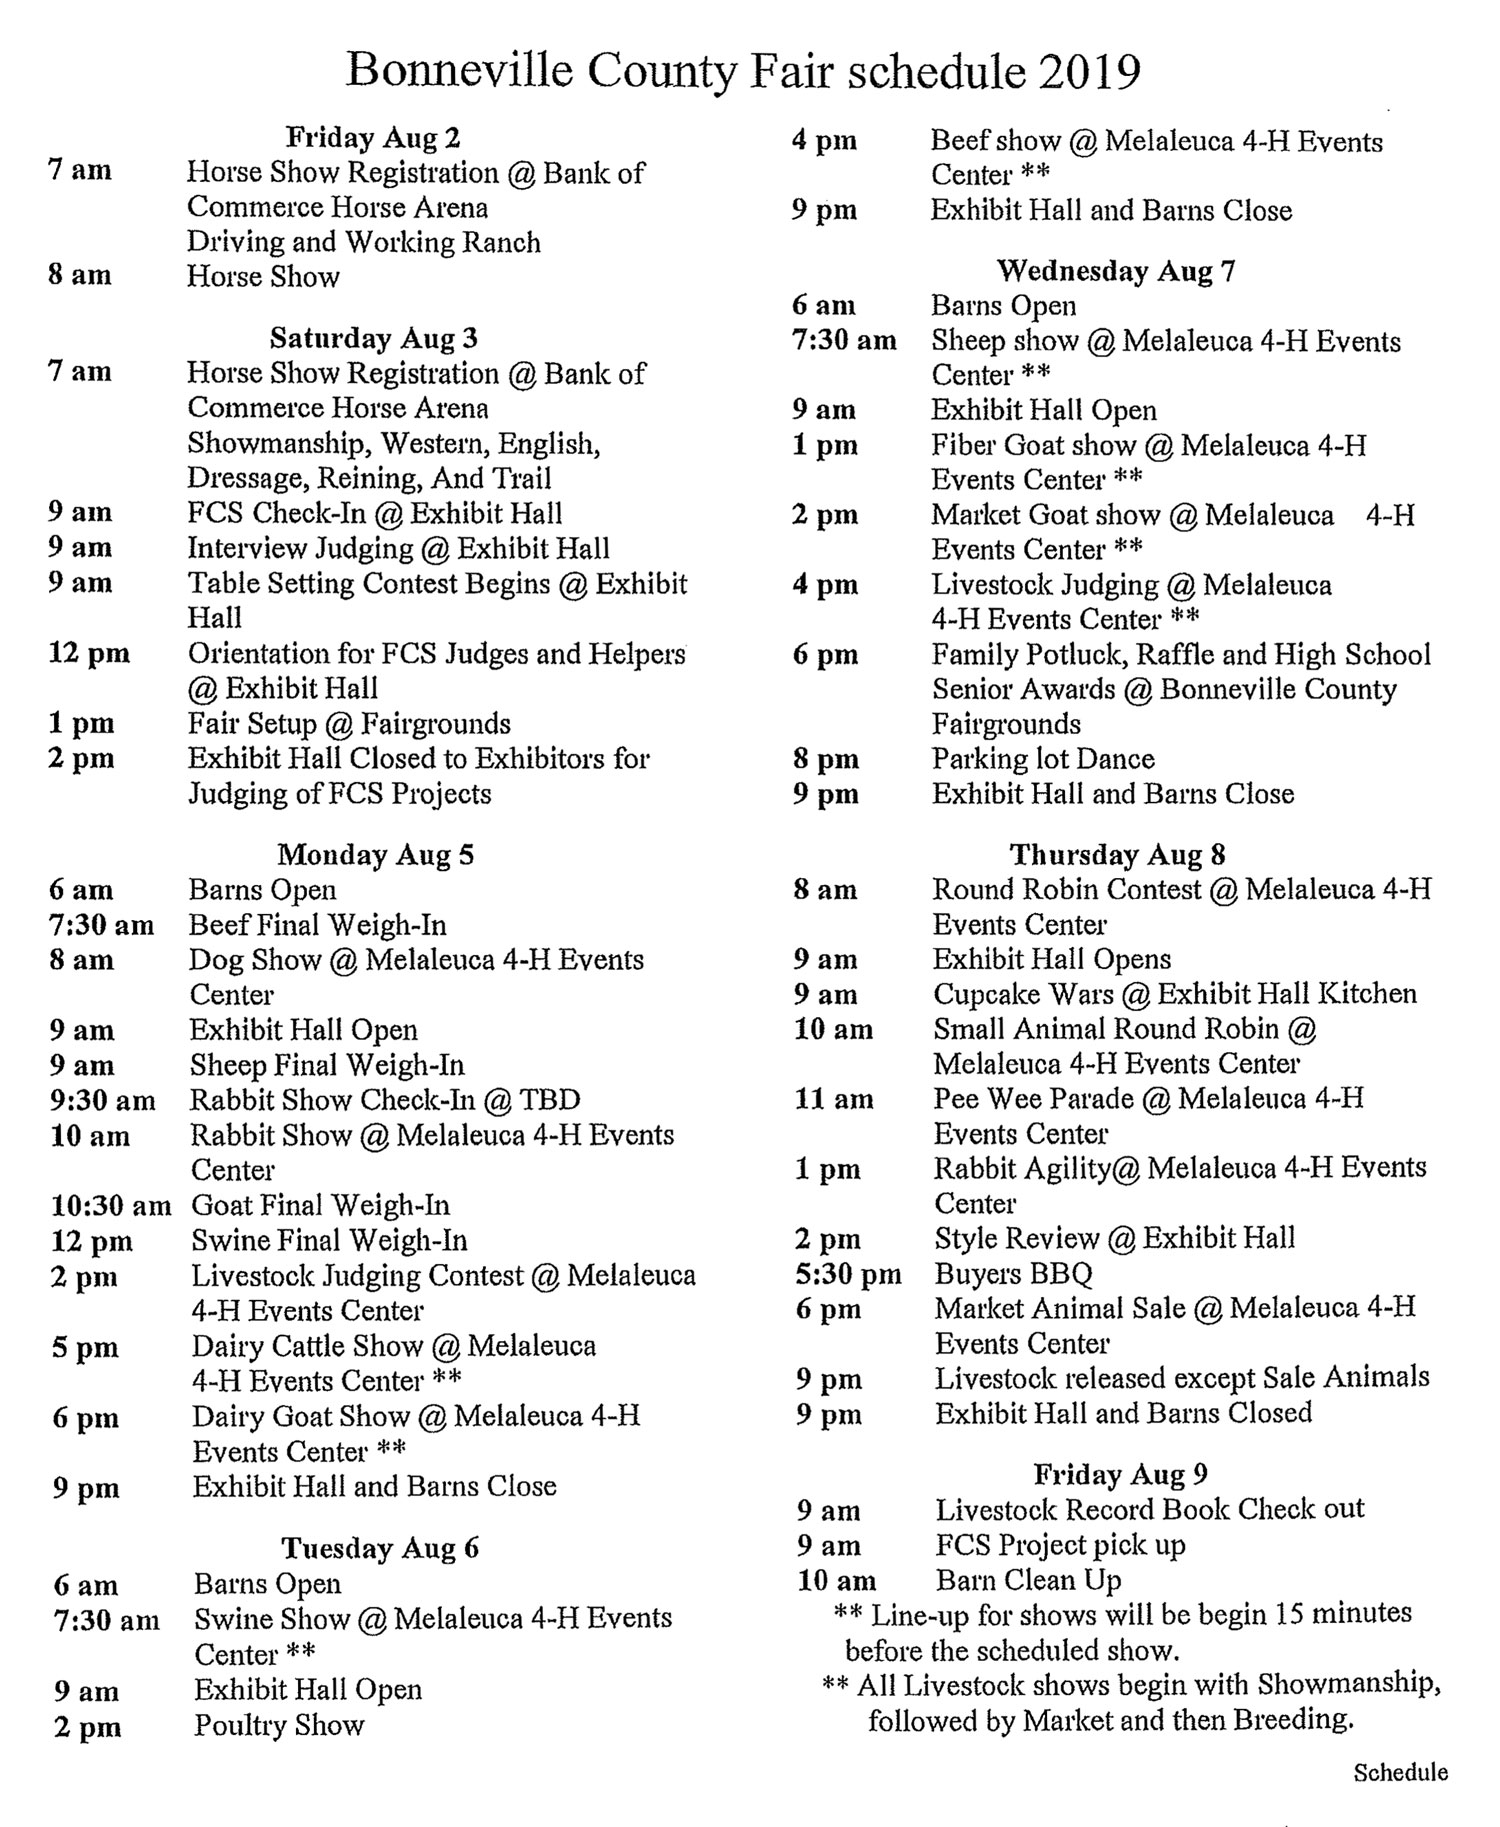 2019-Bonneville-County-Fair-Schedule